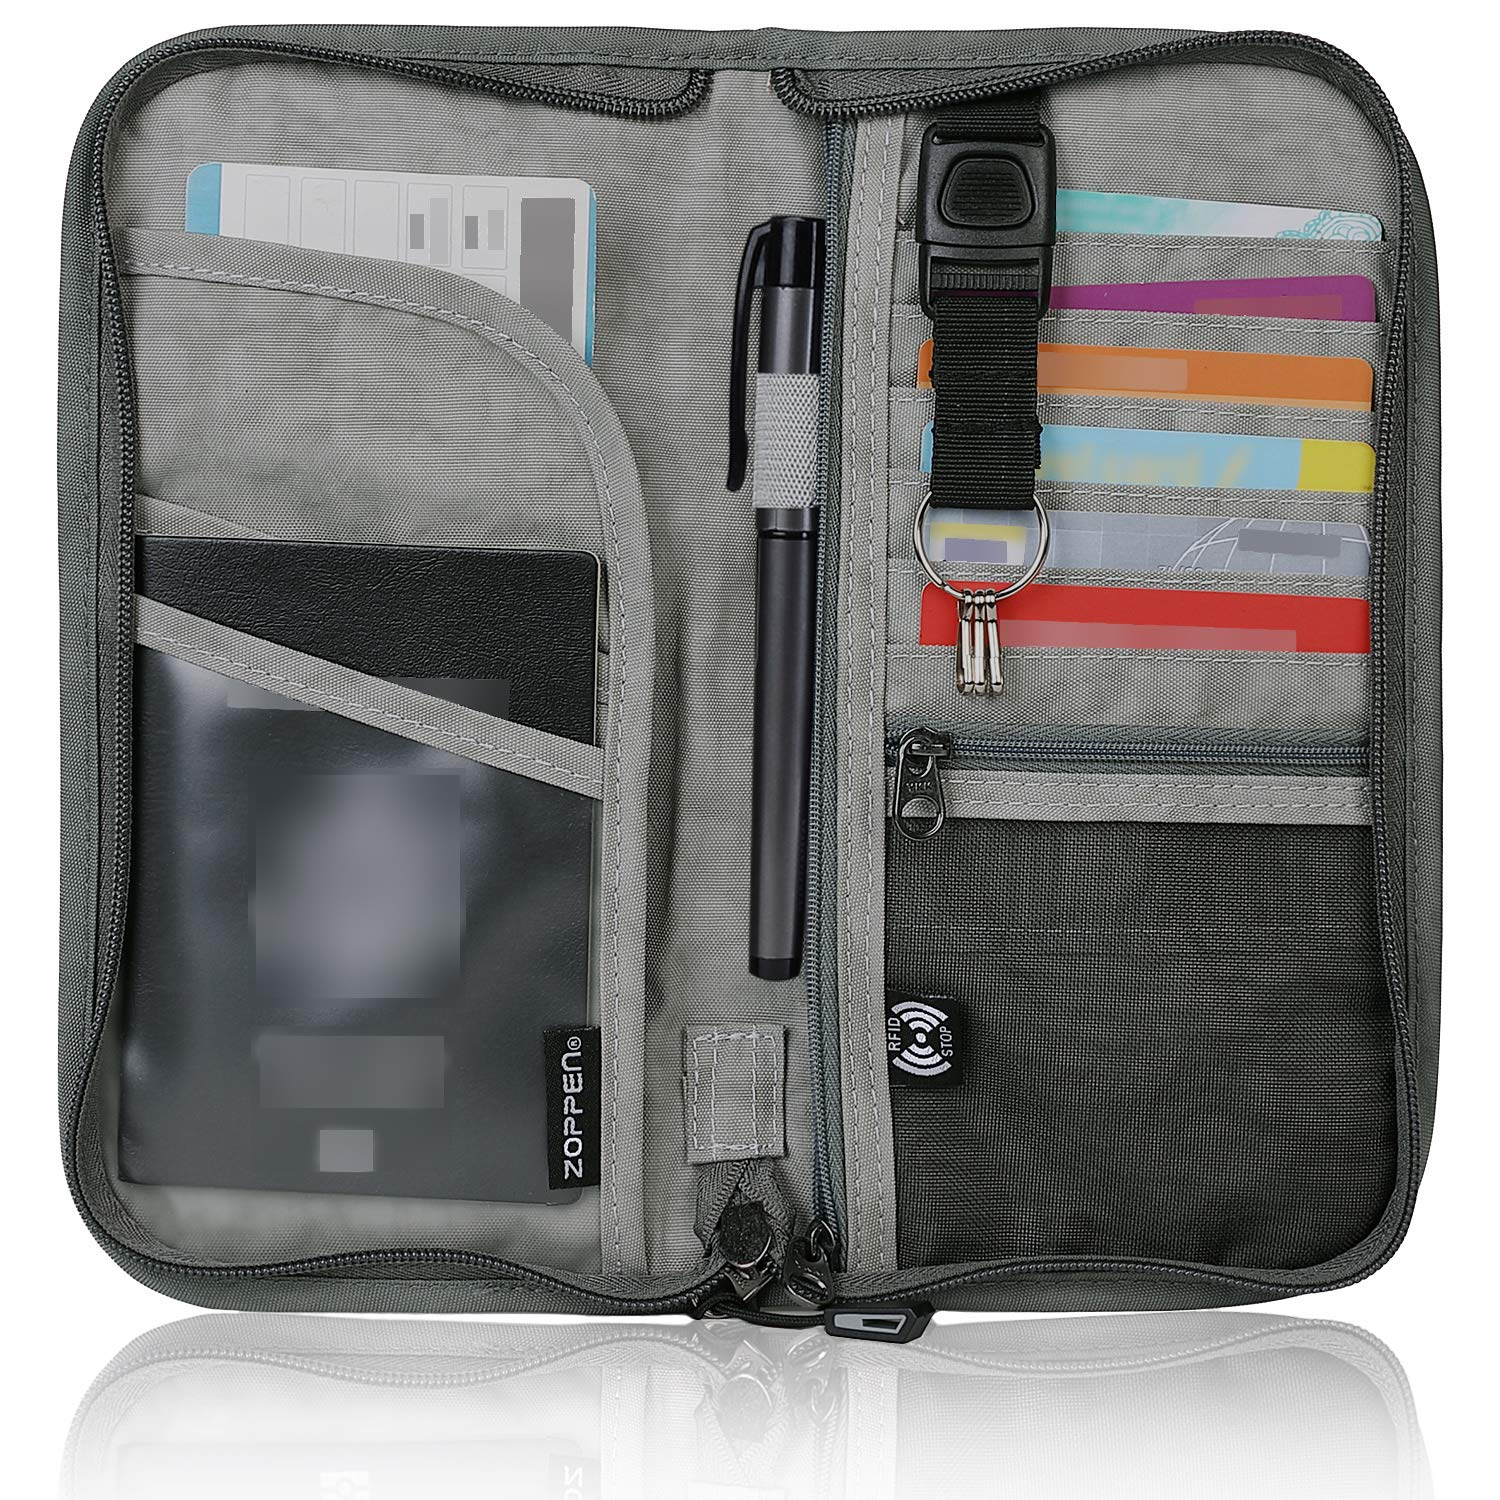 Zoppen RFID Travel Passport Wallet & Documents Organizer Zipper Case with Removable Wristlet Strap, Grey by Zoppen